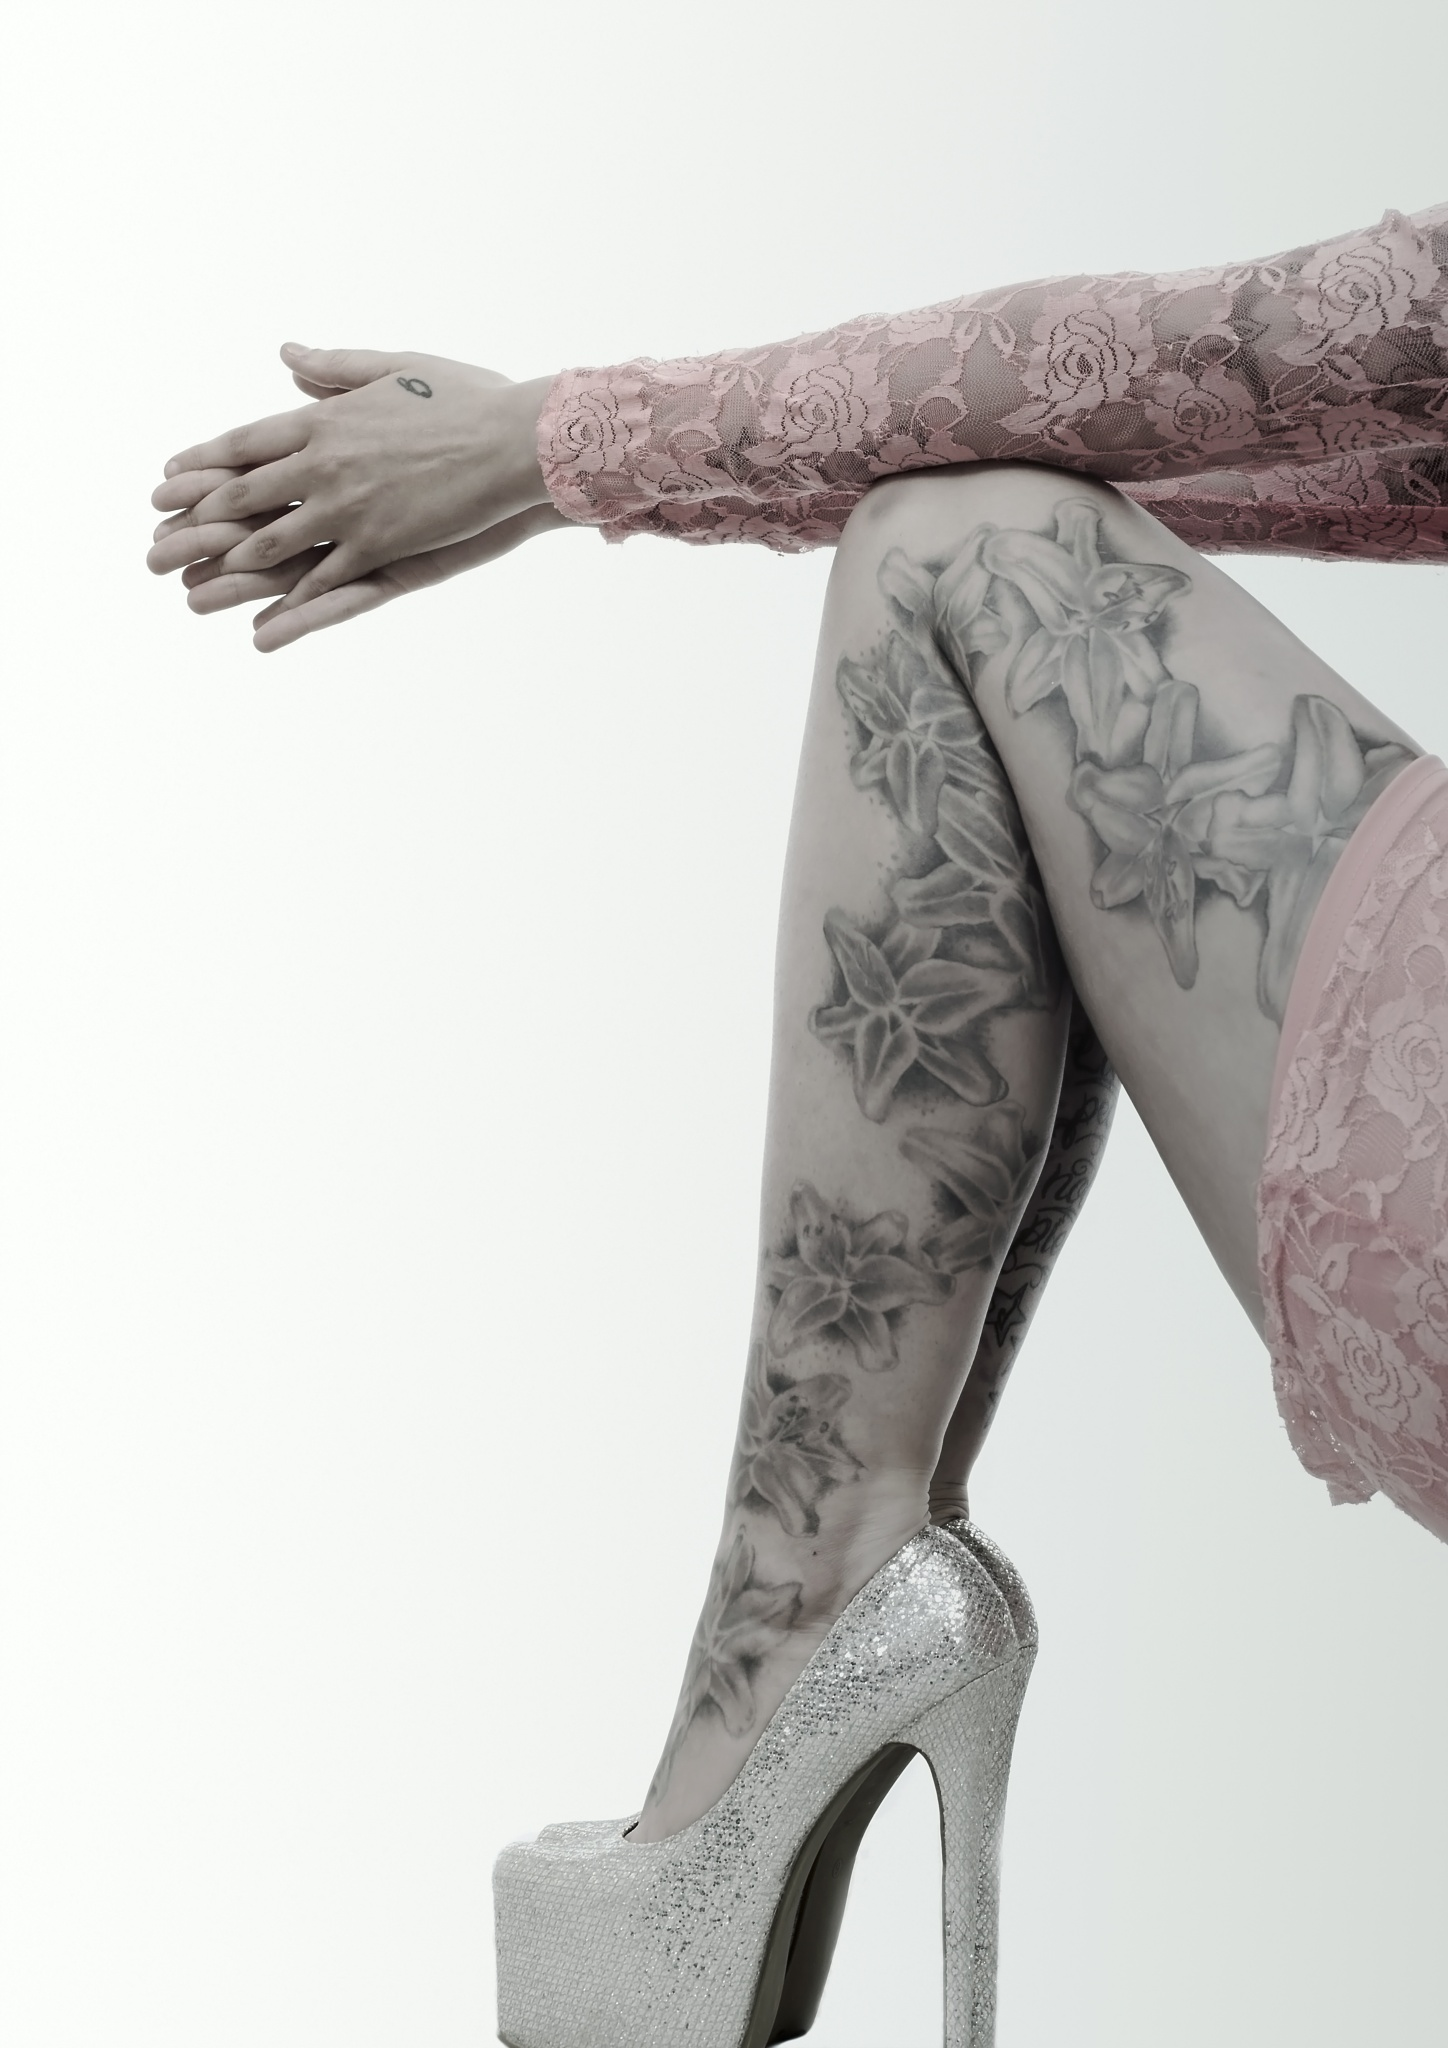 All aout the Legs by Rab Stout